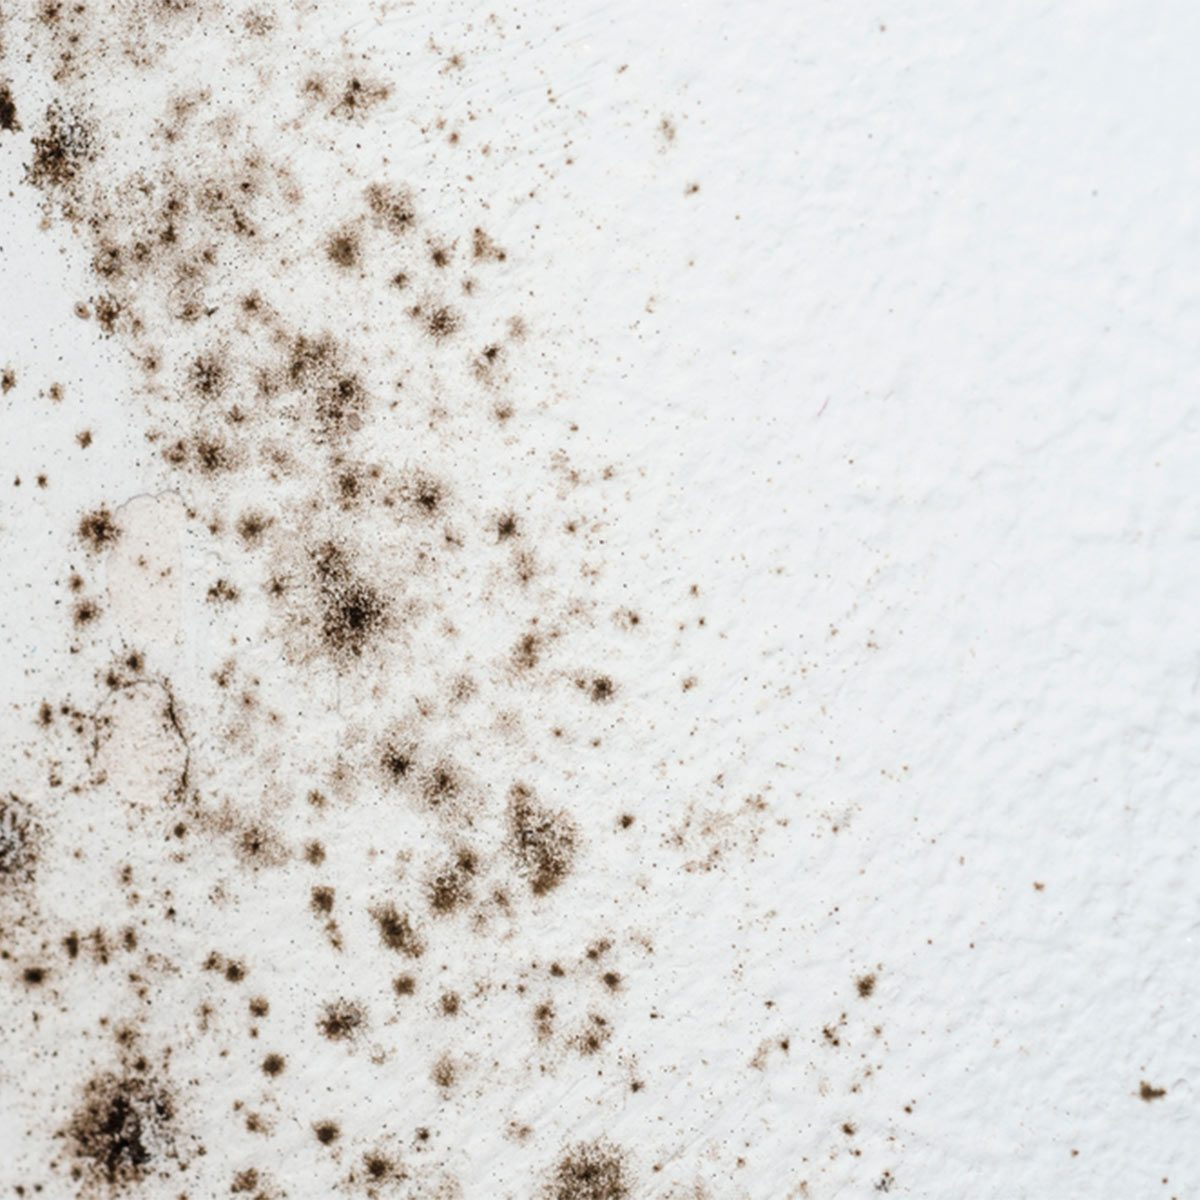 Mold in the wall